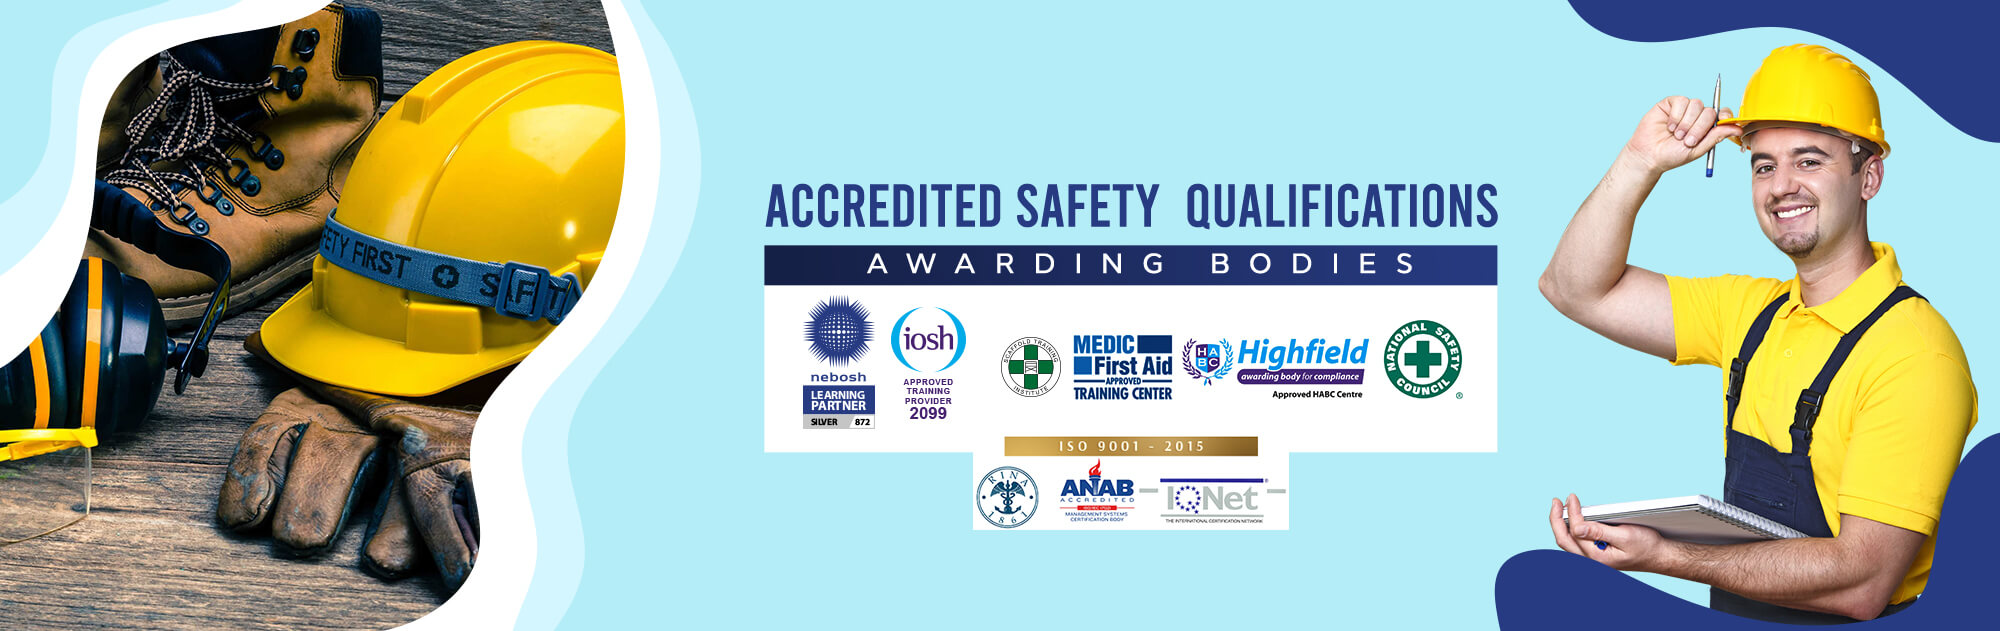 HSEI Accredited Safety Training Institute - NEBOSH, IOSH , MFA, HIGHFIELD, NSC, RINA 1861, ANAB, IQNET